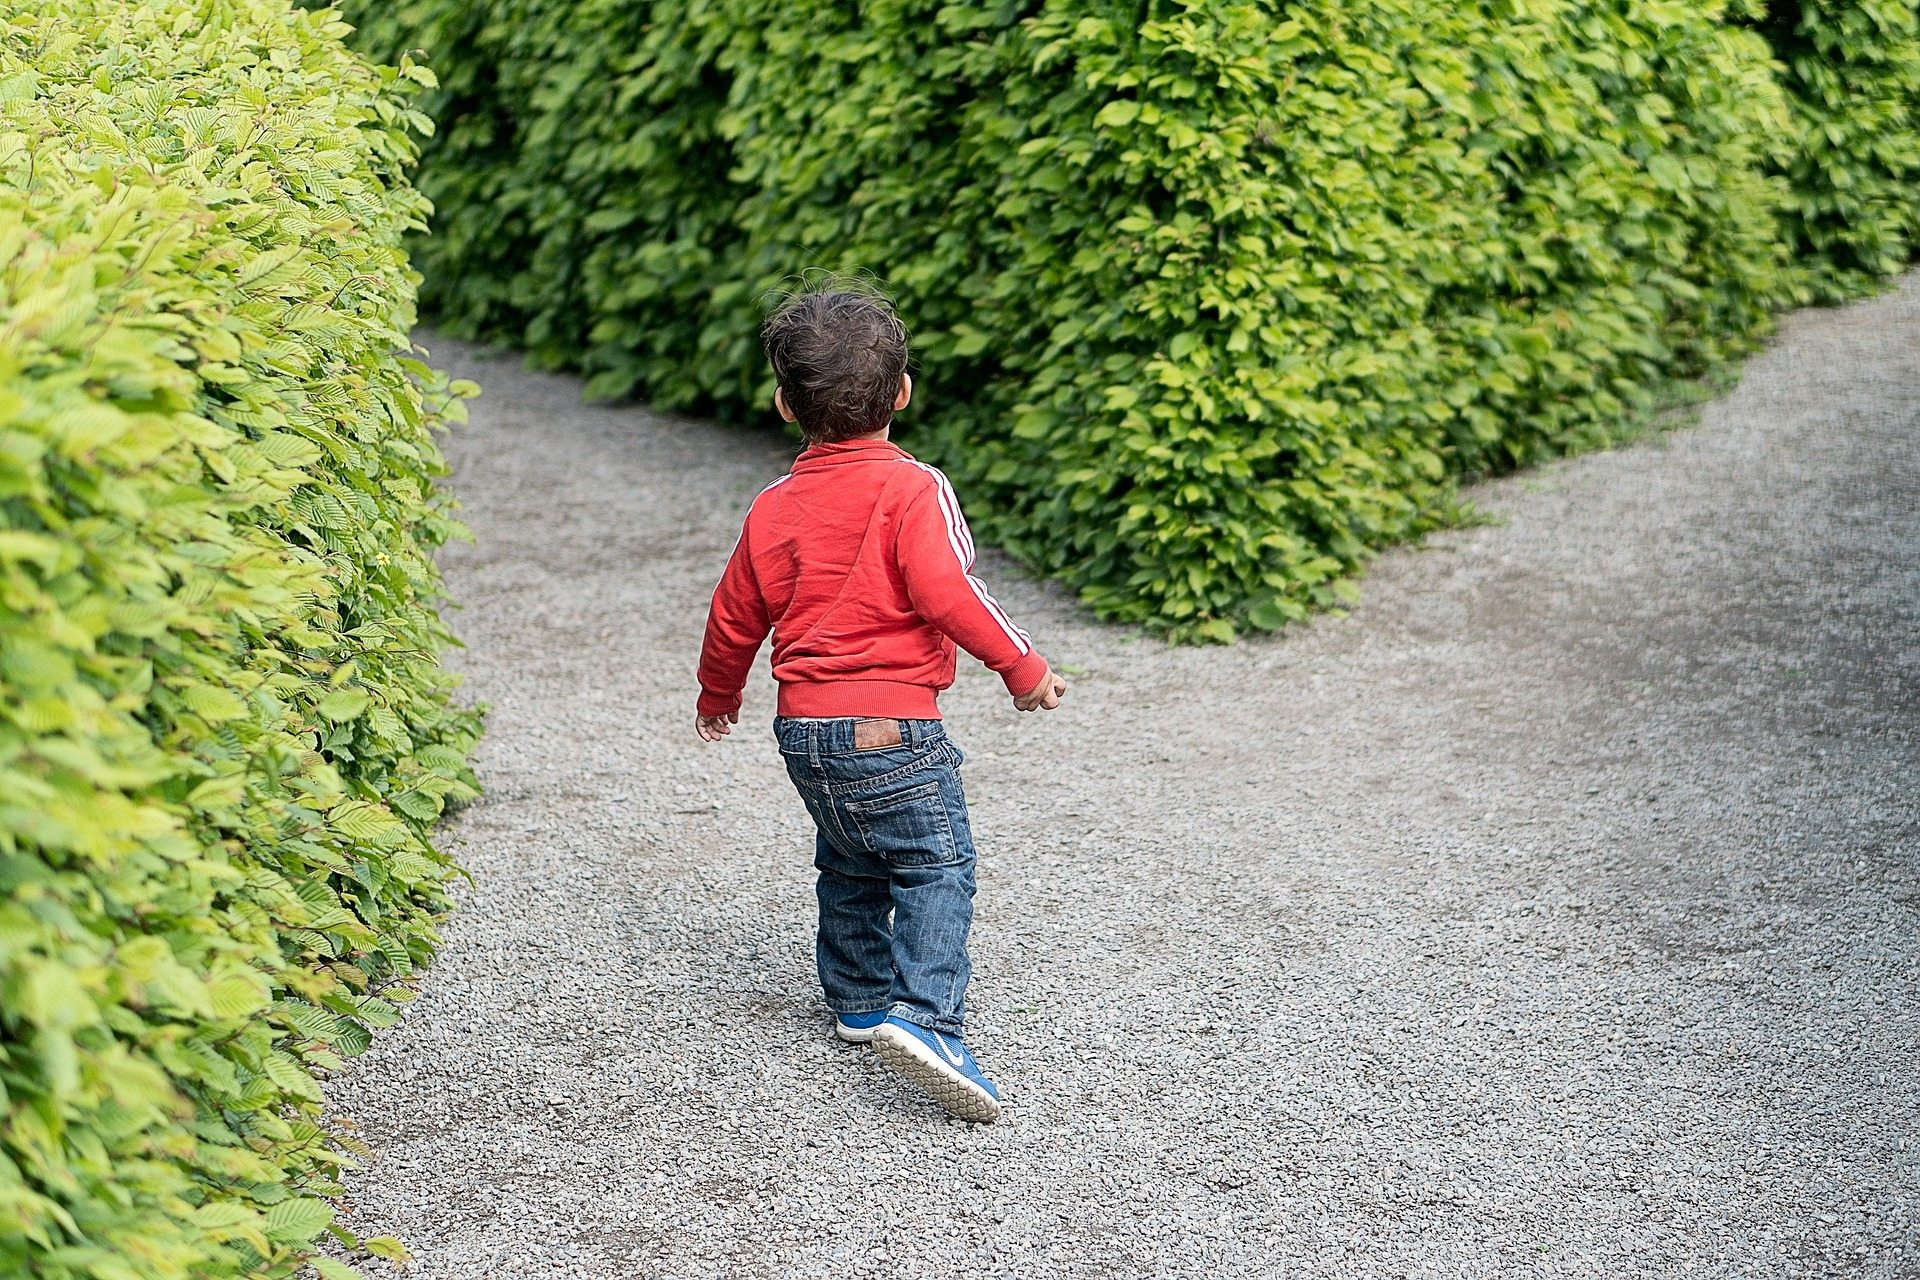 Image: A child trying to figure out which way to go